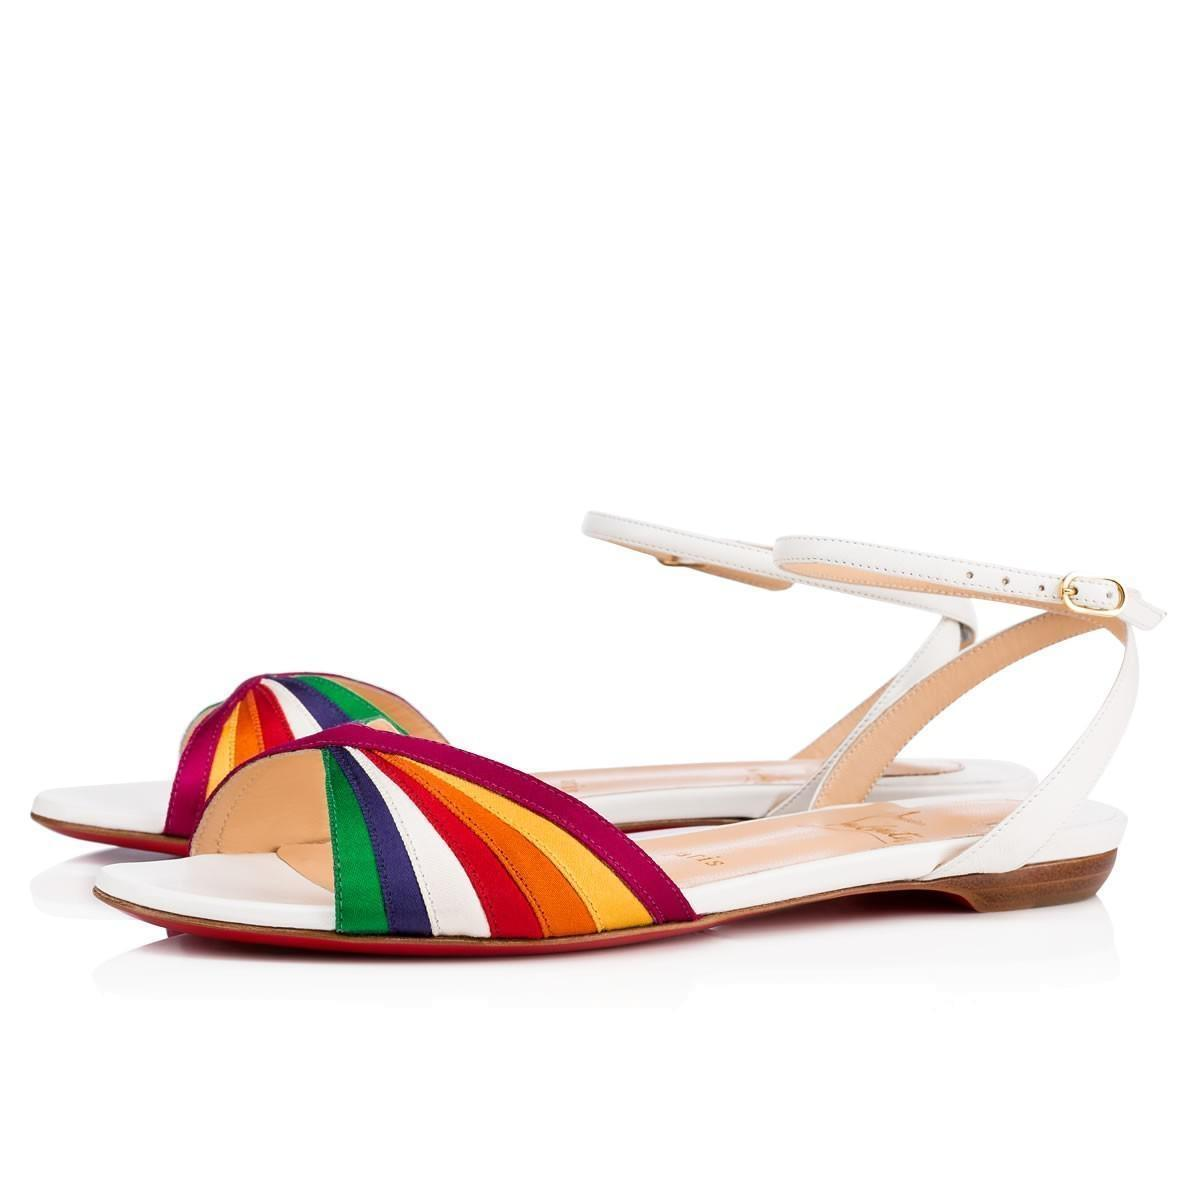 Christian Louboutin White Naseeba Flat Latte Rainbow Red Multicolor Ankle Strap Slide Sandals Size EU 39 (Approx. US 9) Regular (M, B)